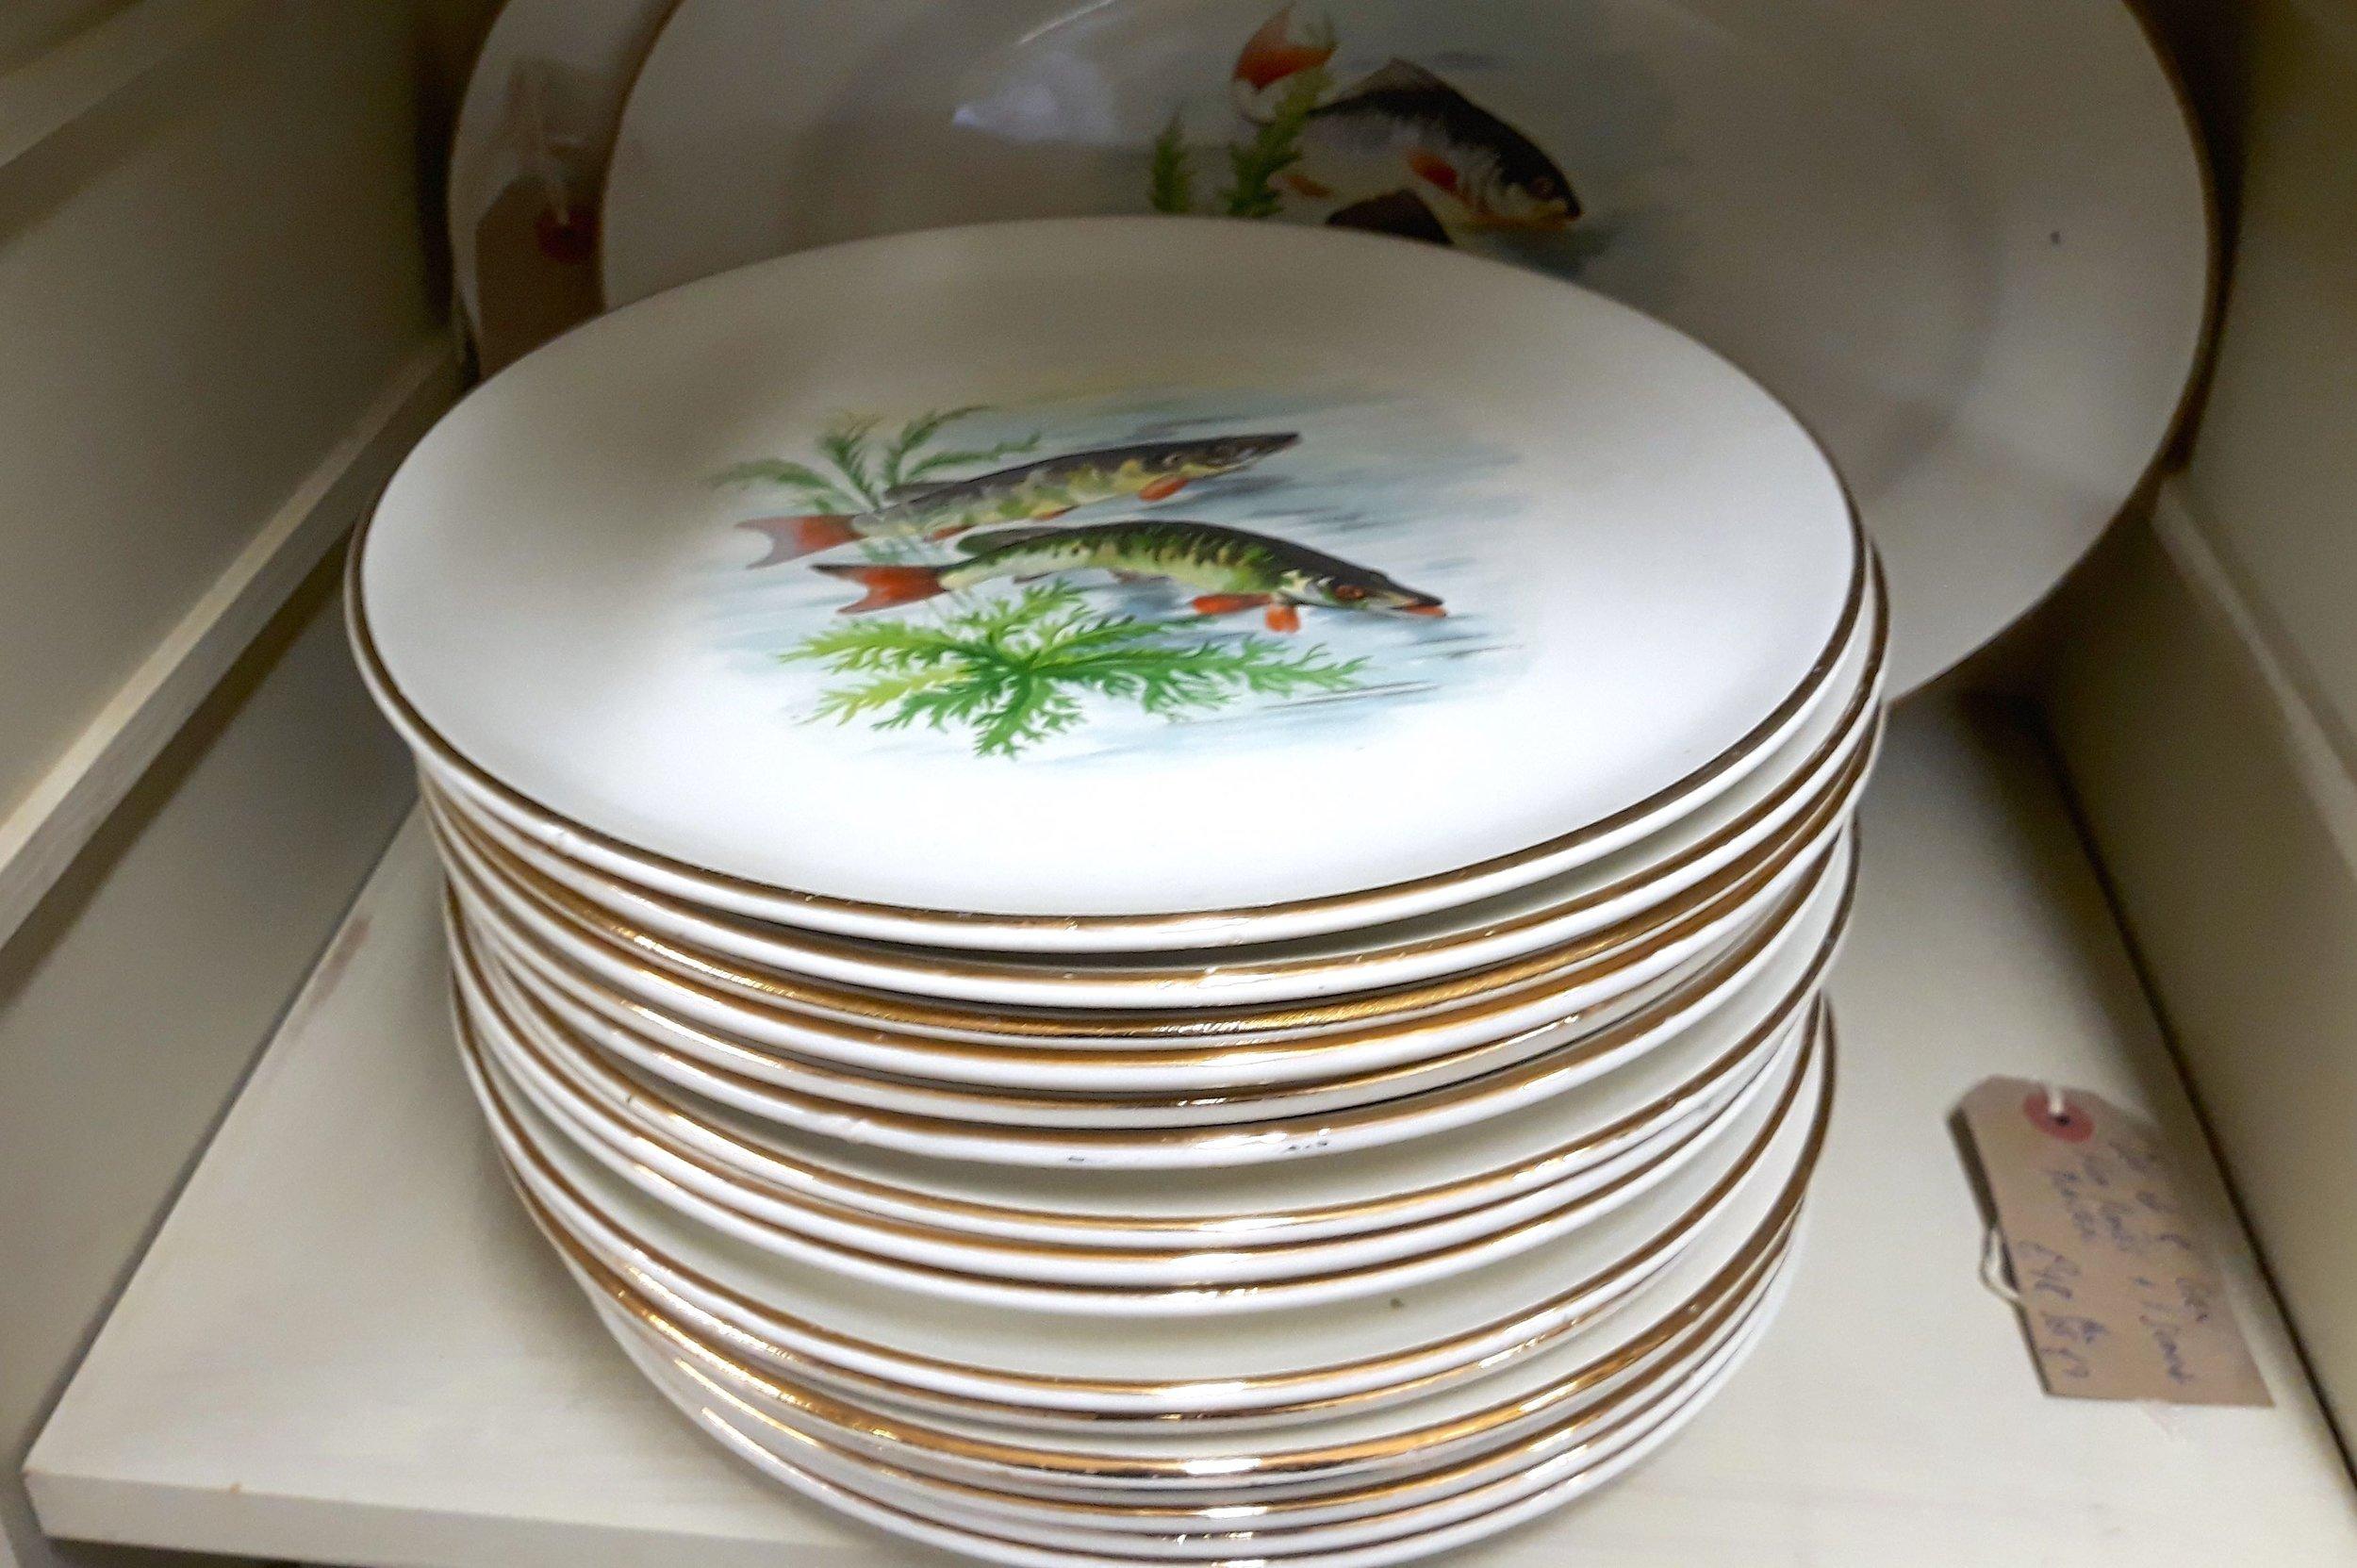 crockery decorated with fish